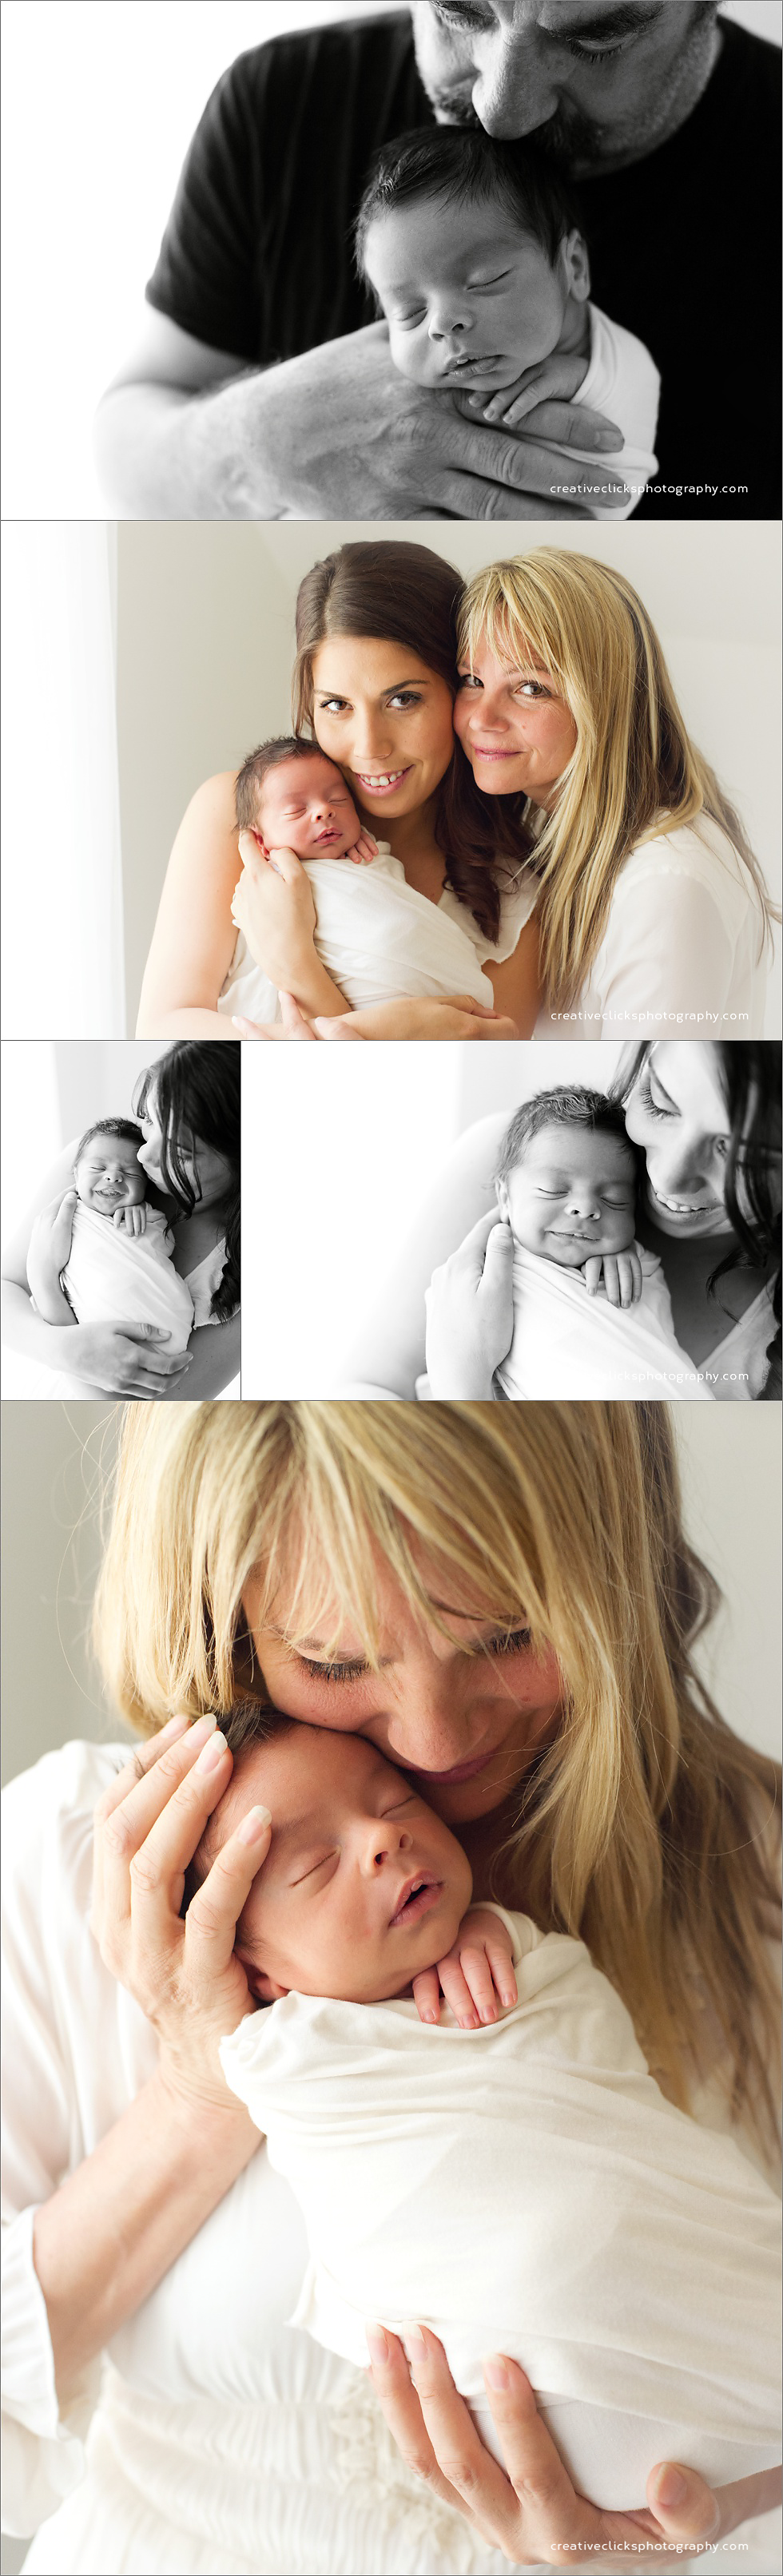 newborn baby boy in the arms of his family